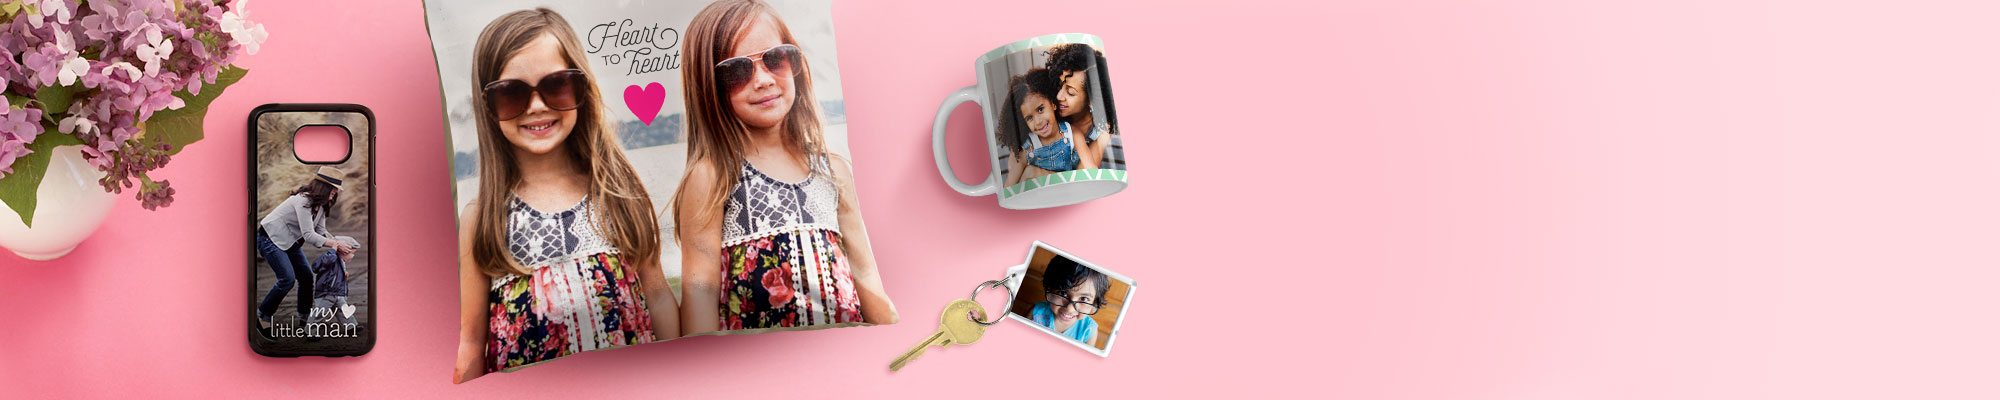 Photo Gifts : Perfectly personalised gifts, check out some of our favourite gift ideas below and we'll help you get gorgeous gifting just right.